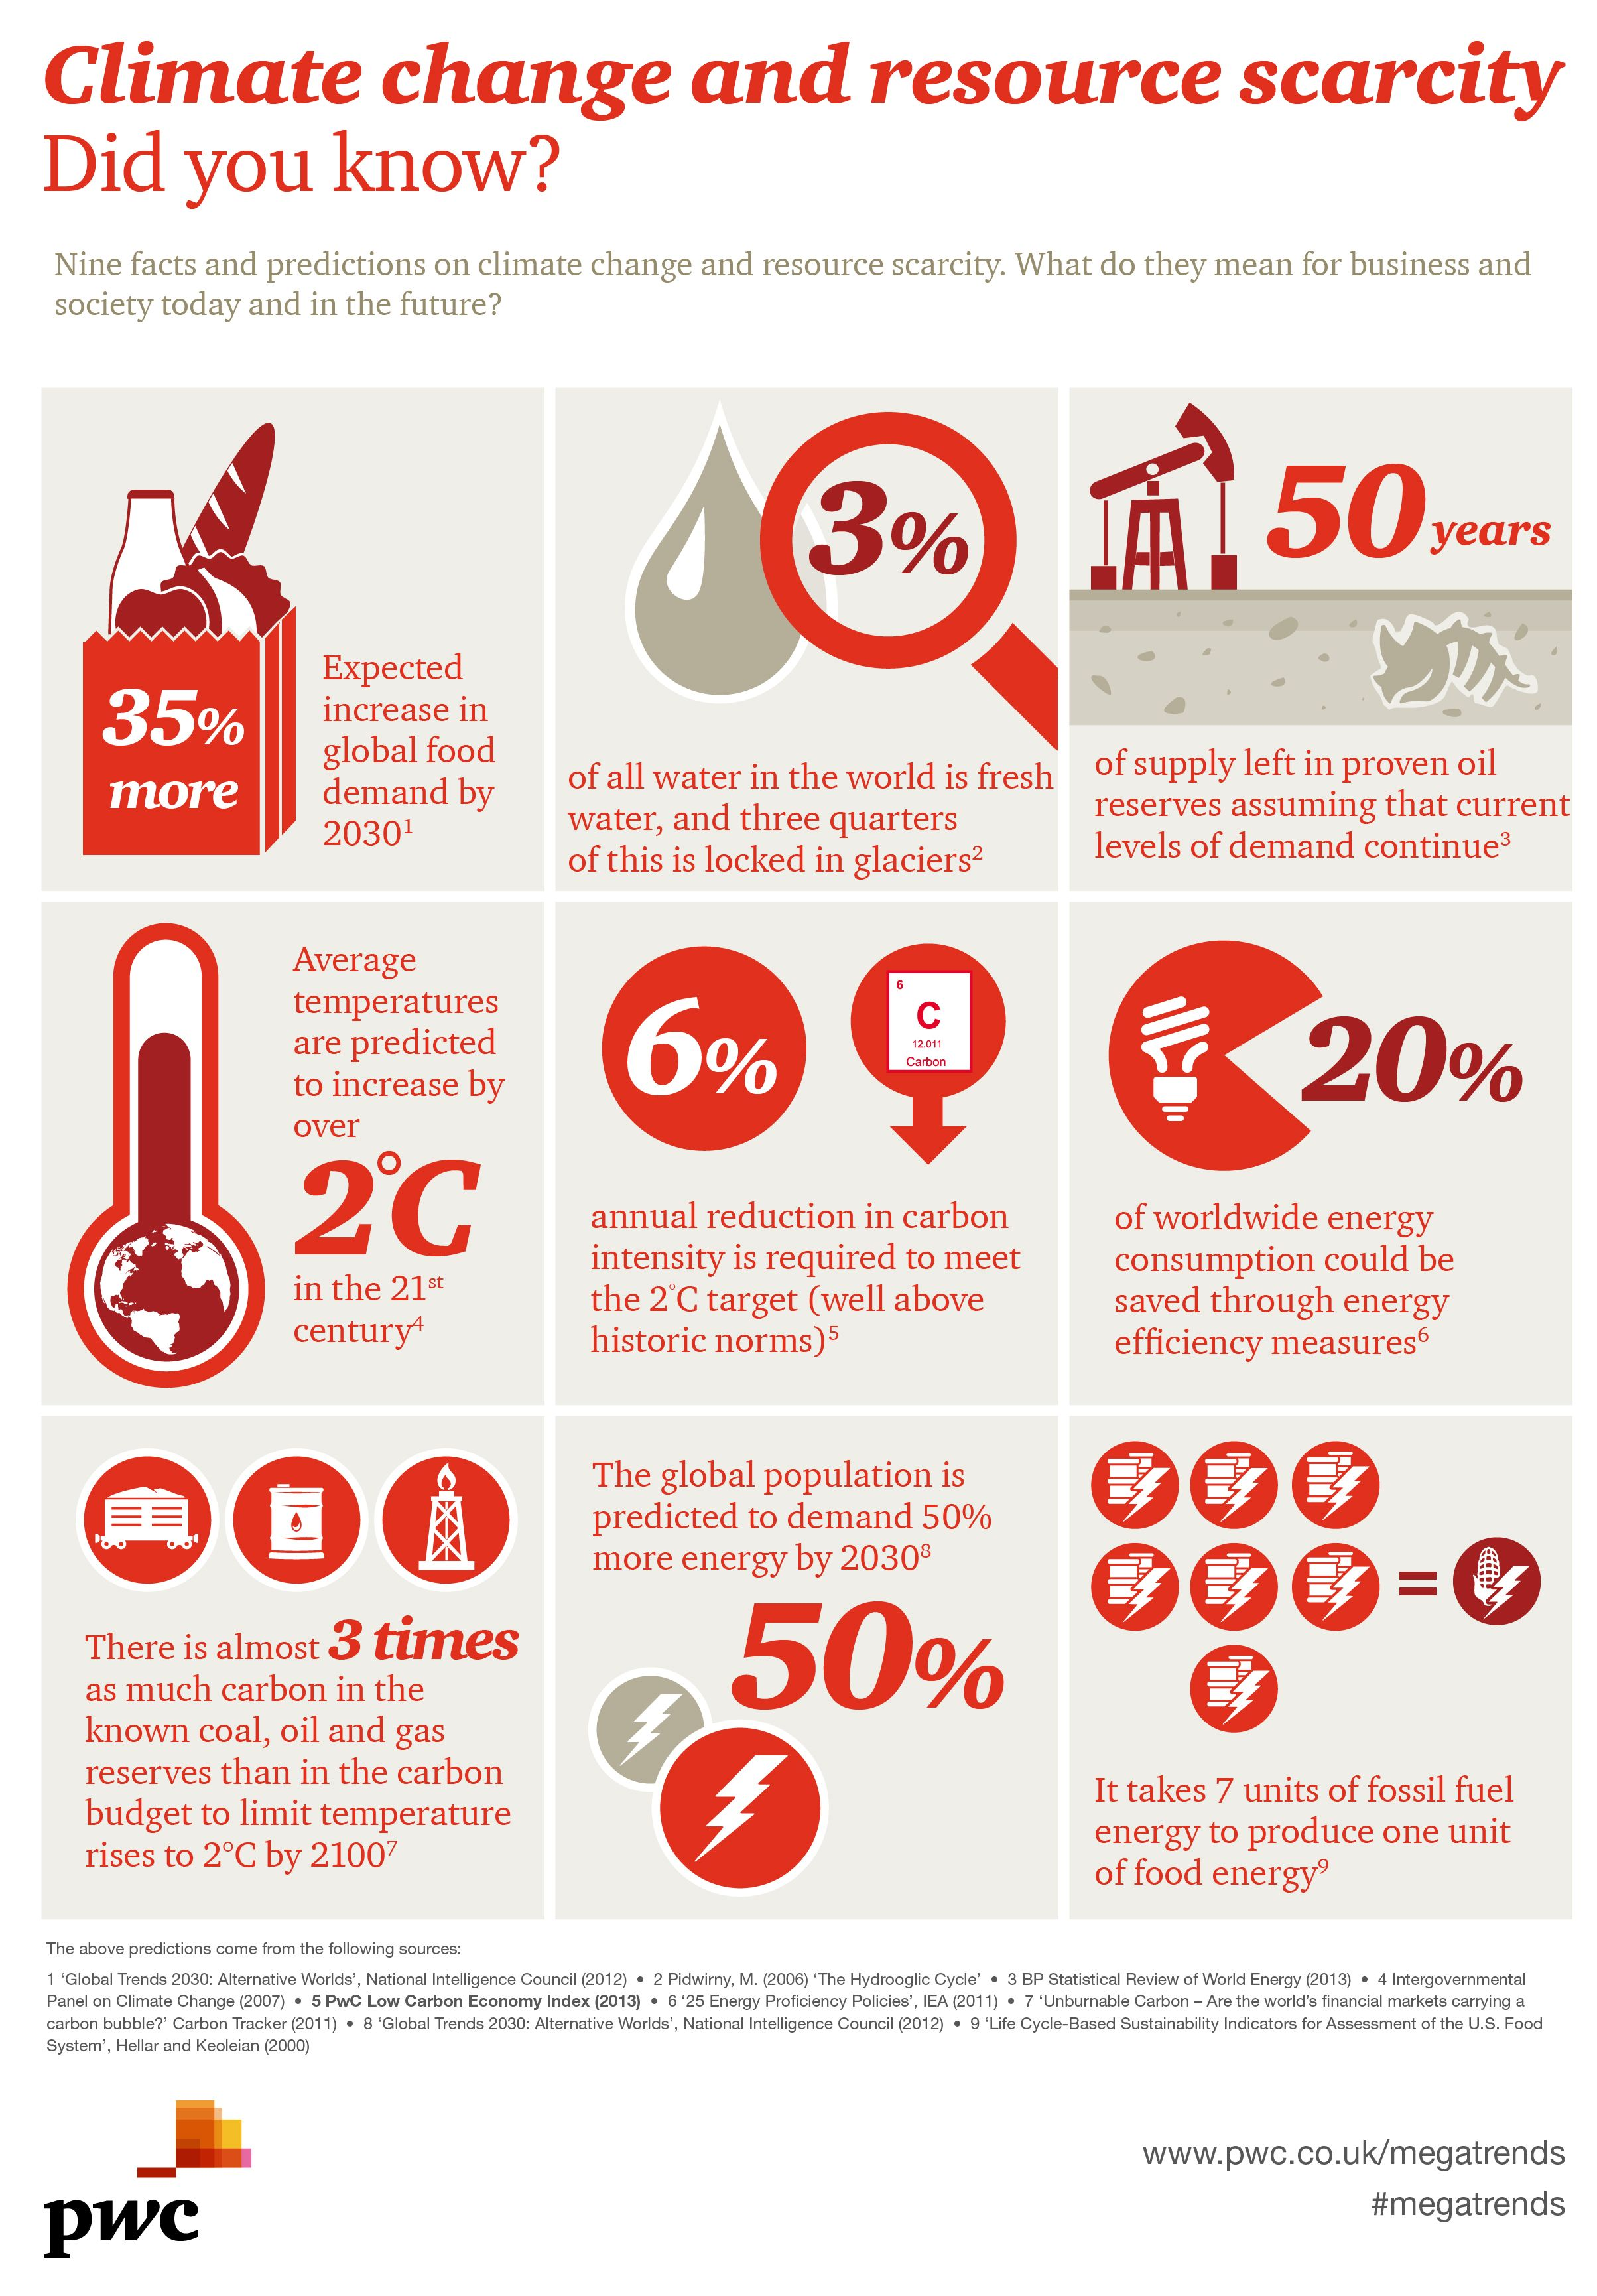 Pin by PwC on Sustainability & Climate Change | Climate ...